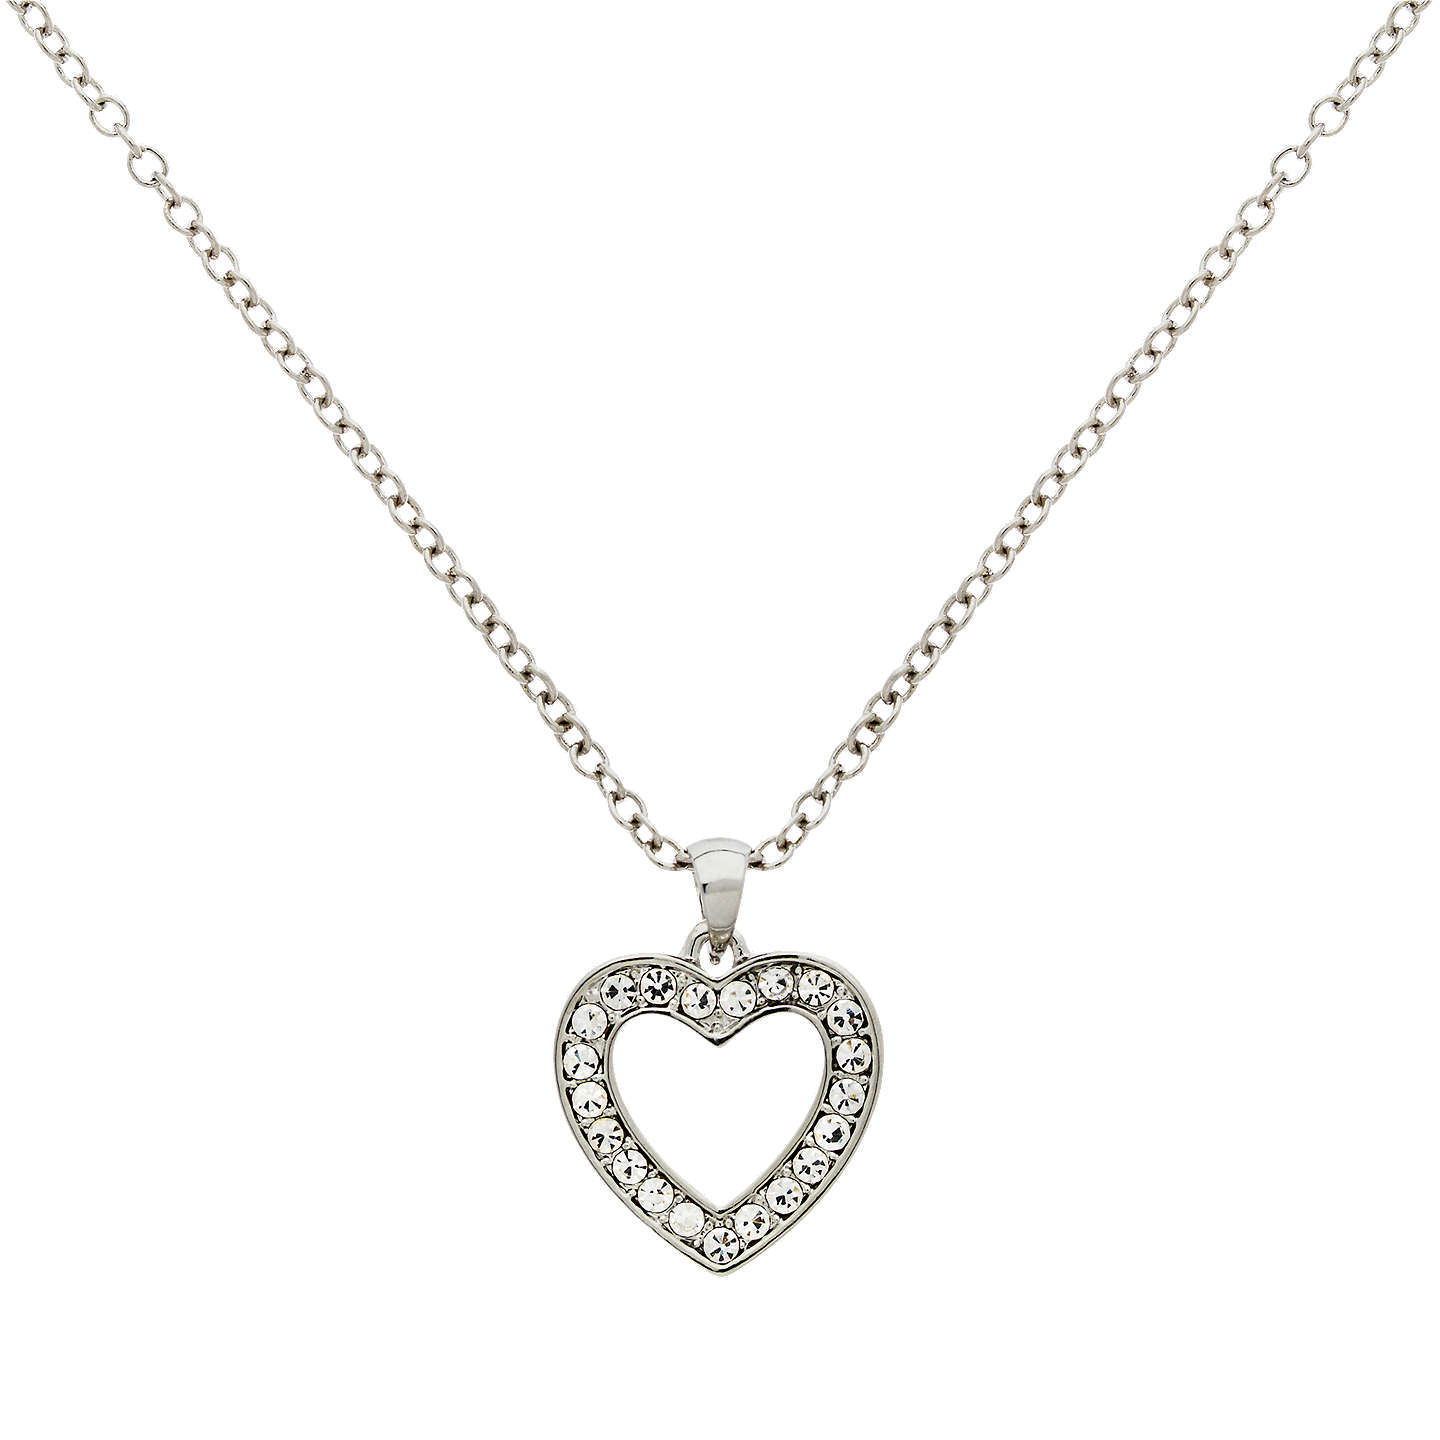 Finesse glass crystal open heart pendant necklace silver at john lewis buyfinesse glass crystal open heart pendant necklace silver online at johnlewis aloadofball Images